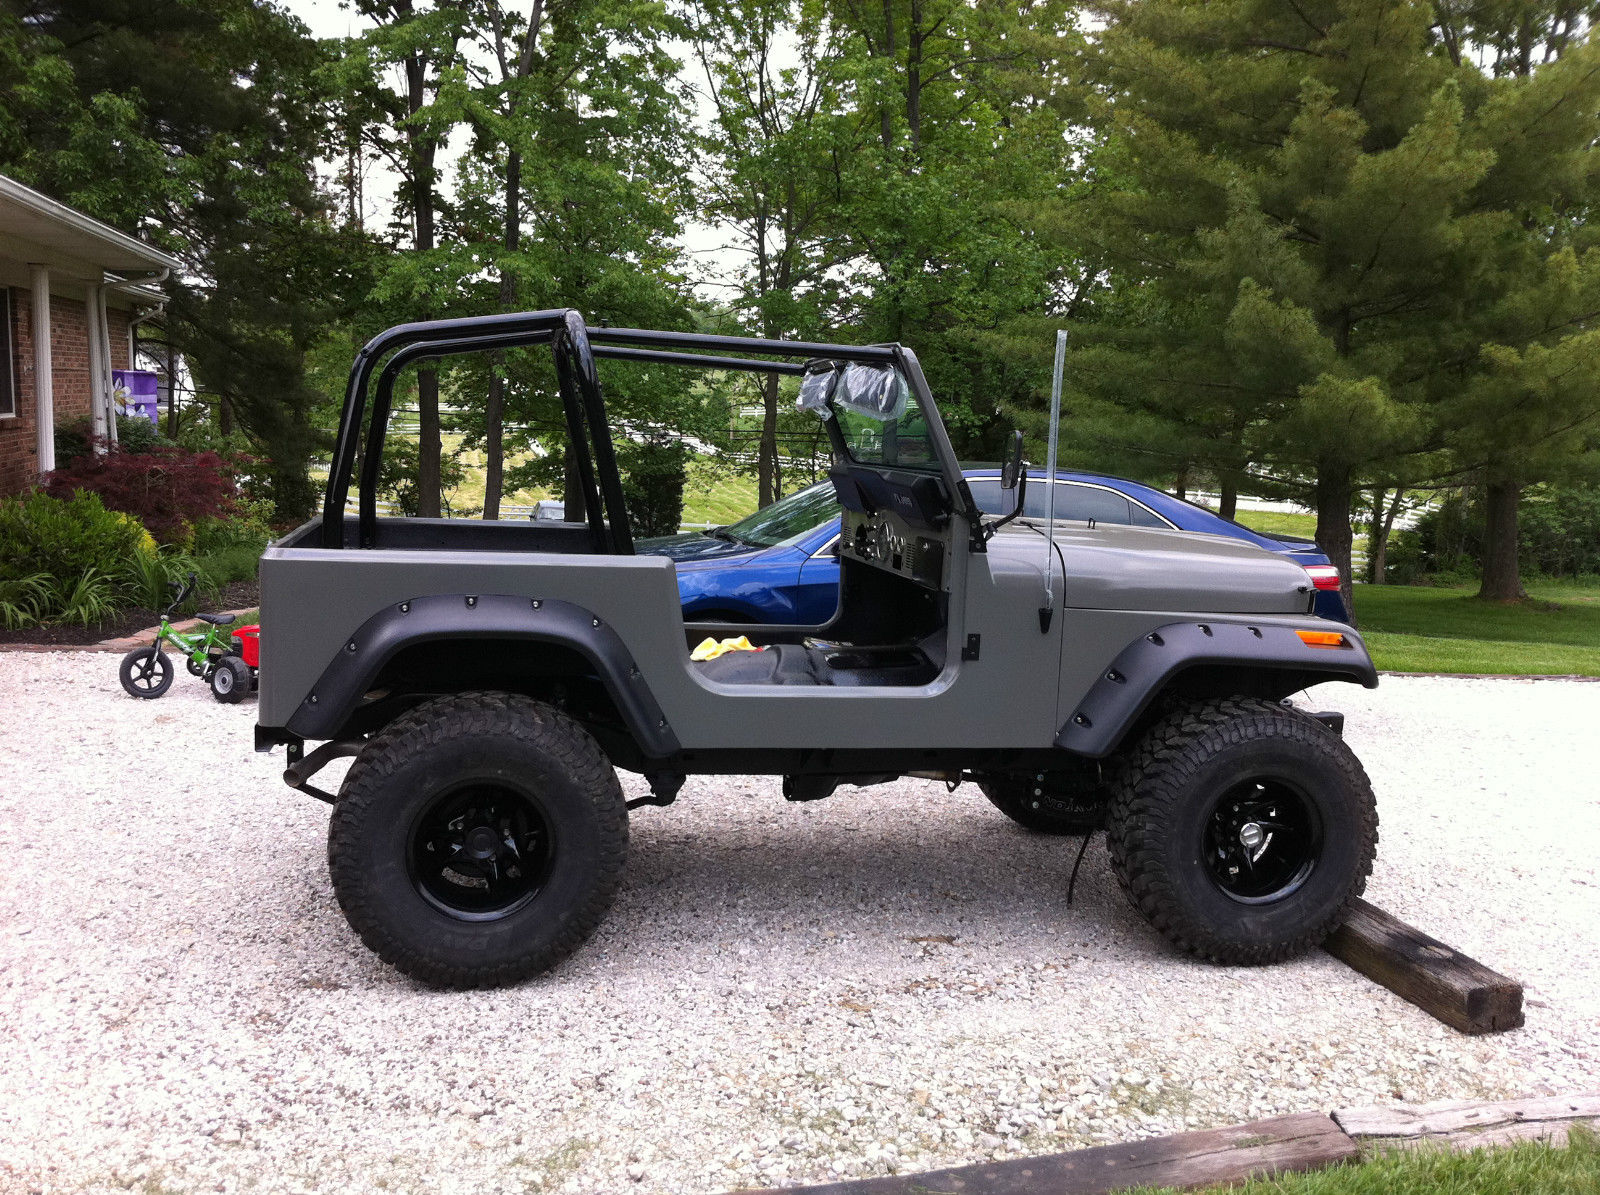 1978-cj7-jeep-rebuilt-7 Jeep Cj Wire Harness on jeep cj7 engine, jeep cj7 speakers, jeep cj7 radio, jeep cj7 turn signal, jeep cj7 oil pump, jeep cj7 restoration guide, jeep cj7 trunk box, jeep cj7 alternator, jeep cj7 transmission, jeep cj7 frame, jeep cj7 hood, jeep cj7 lights, jeep cj7 solenoid, jeep cj7 radiator, jeep cj7 jack, jeep cj7 pedal, jeep cj7 exhaust, jeep cj7 manual, jeep cj7 carburetor, jeep cj7 windshield,